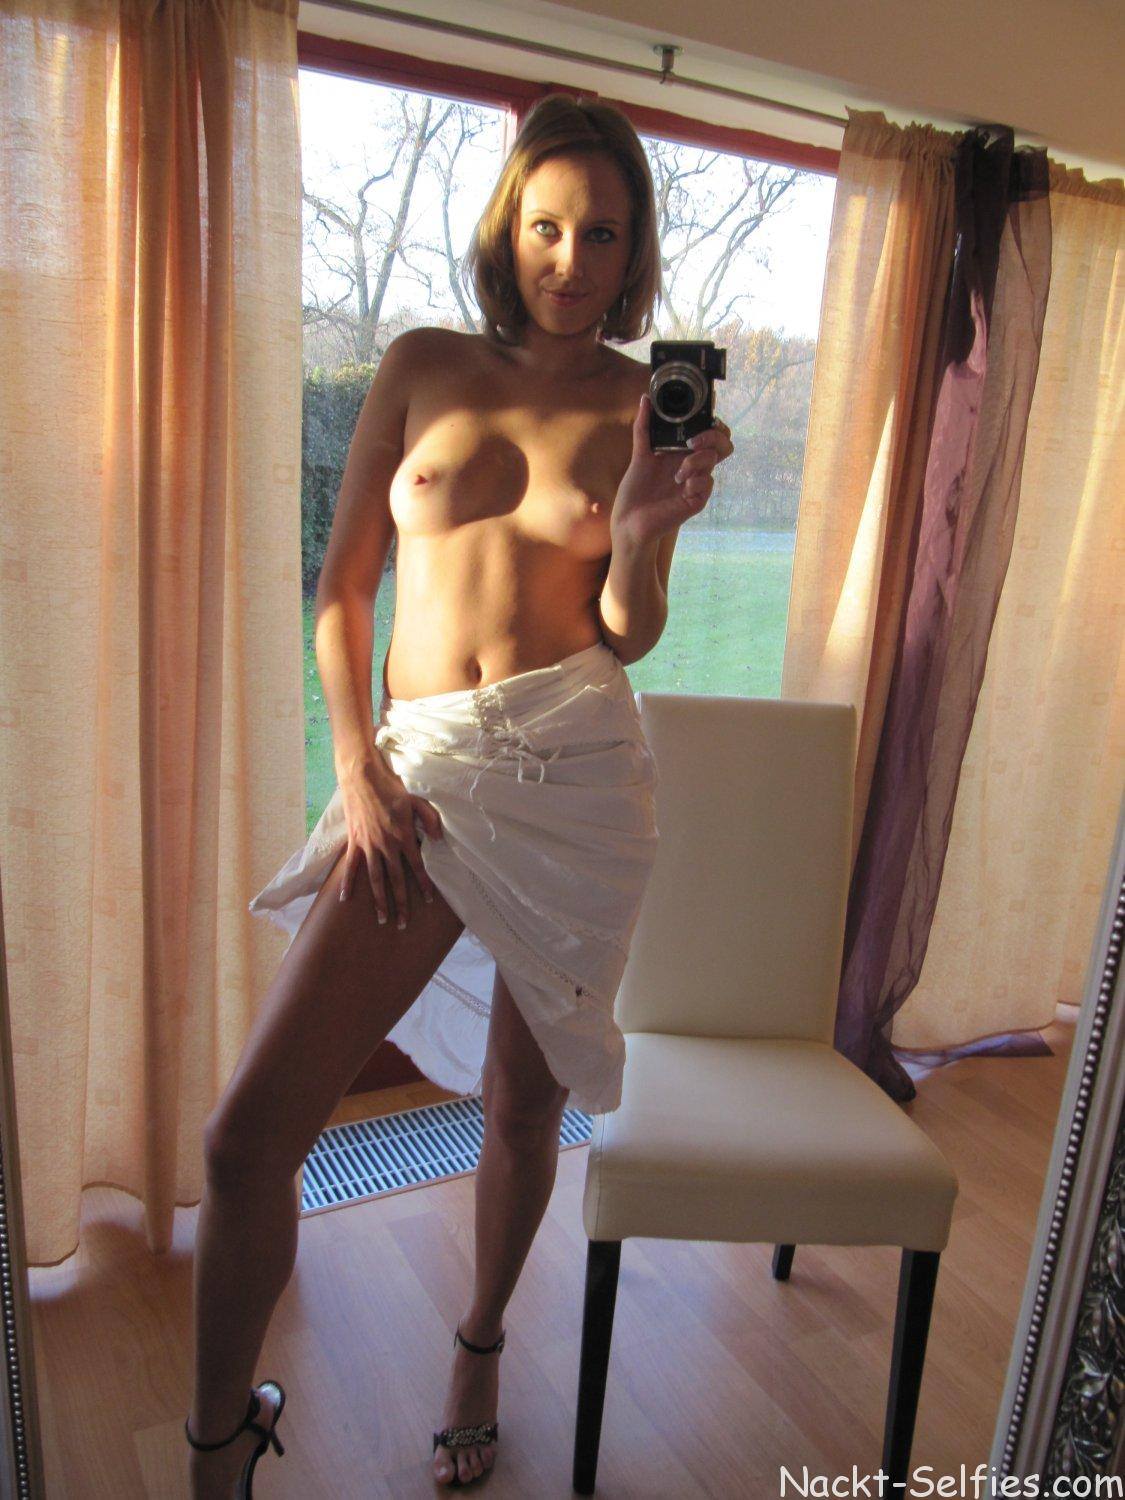 Privater Erotik Self Shot Ella 01